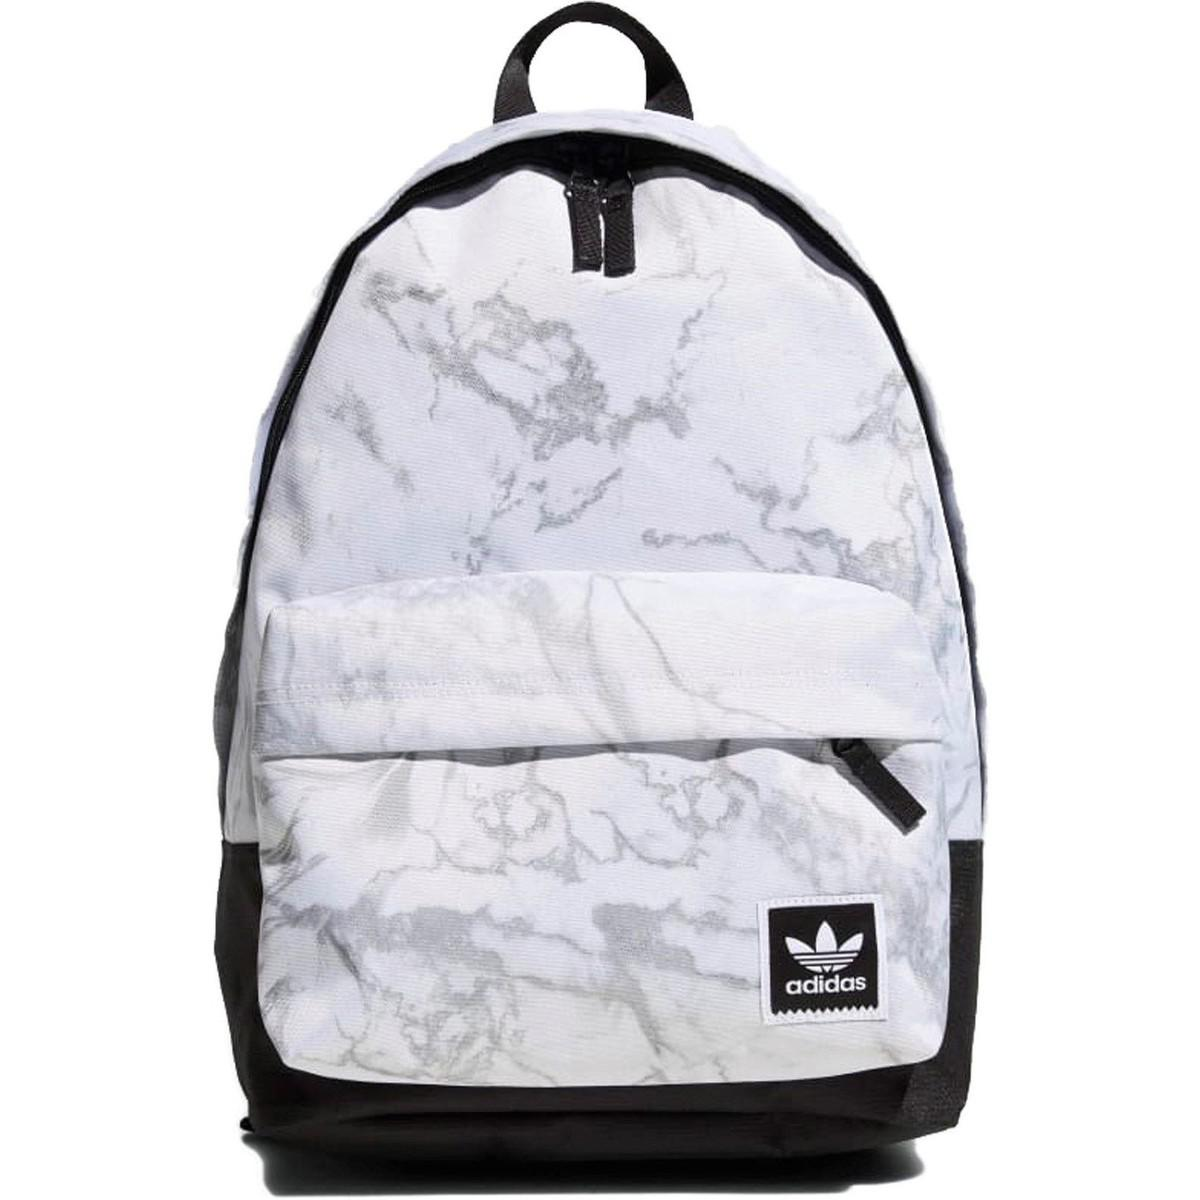 589af45628e2 adidas Aop Multicolour Blanco Men s Backpack In White in White for ...